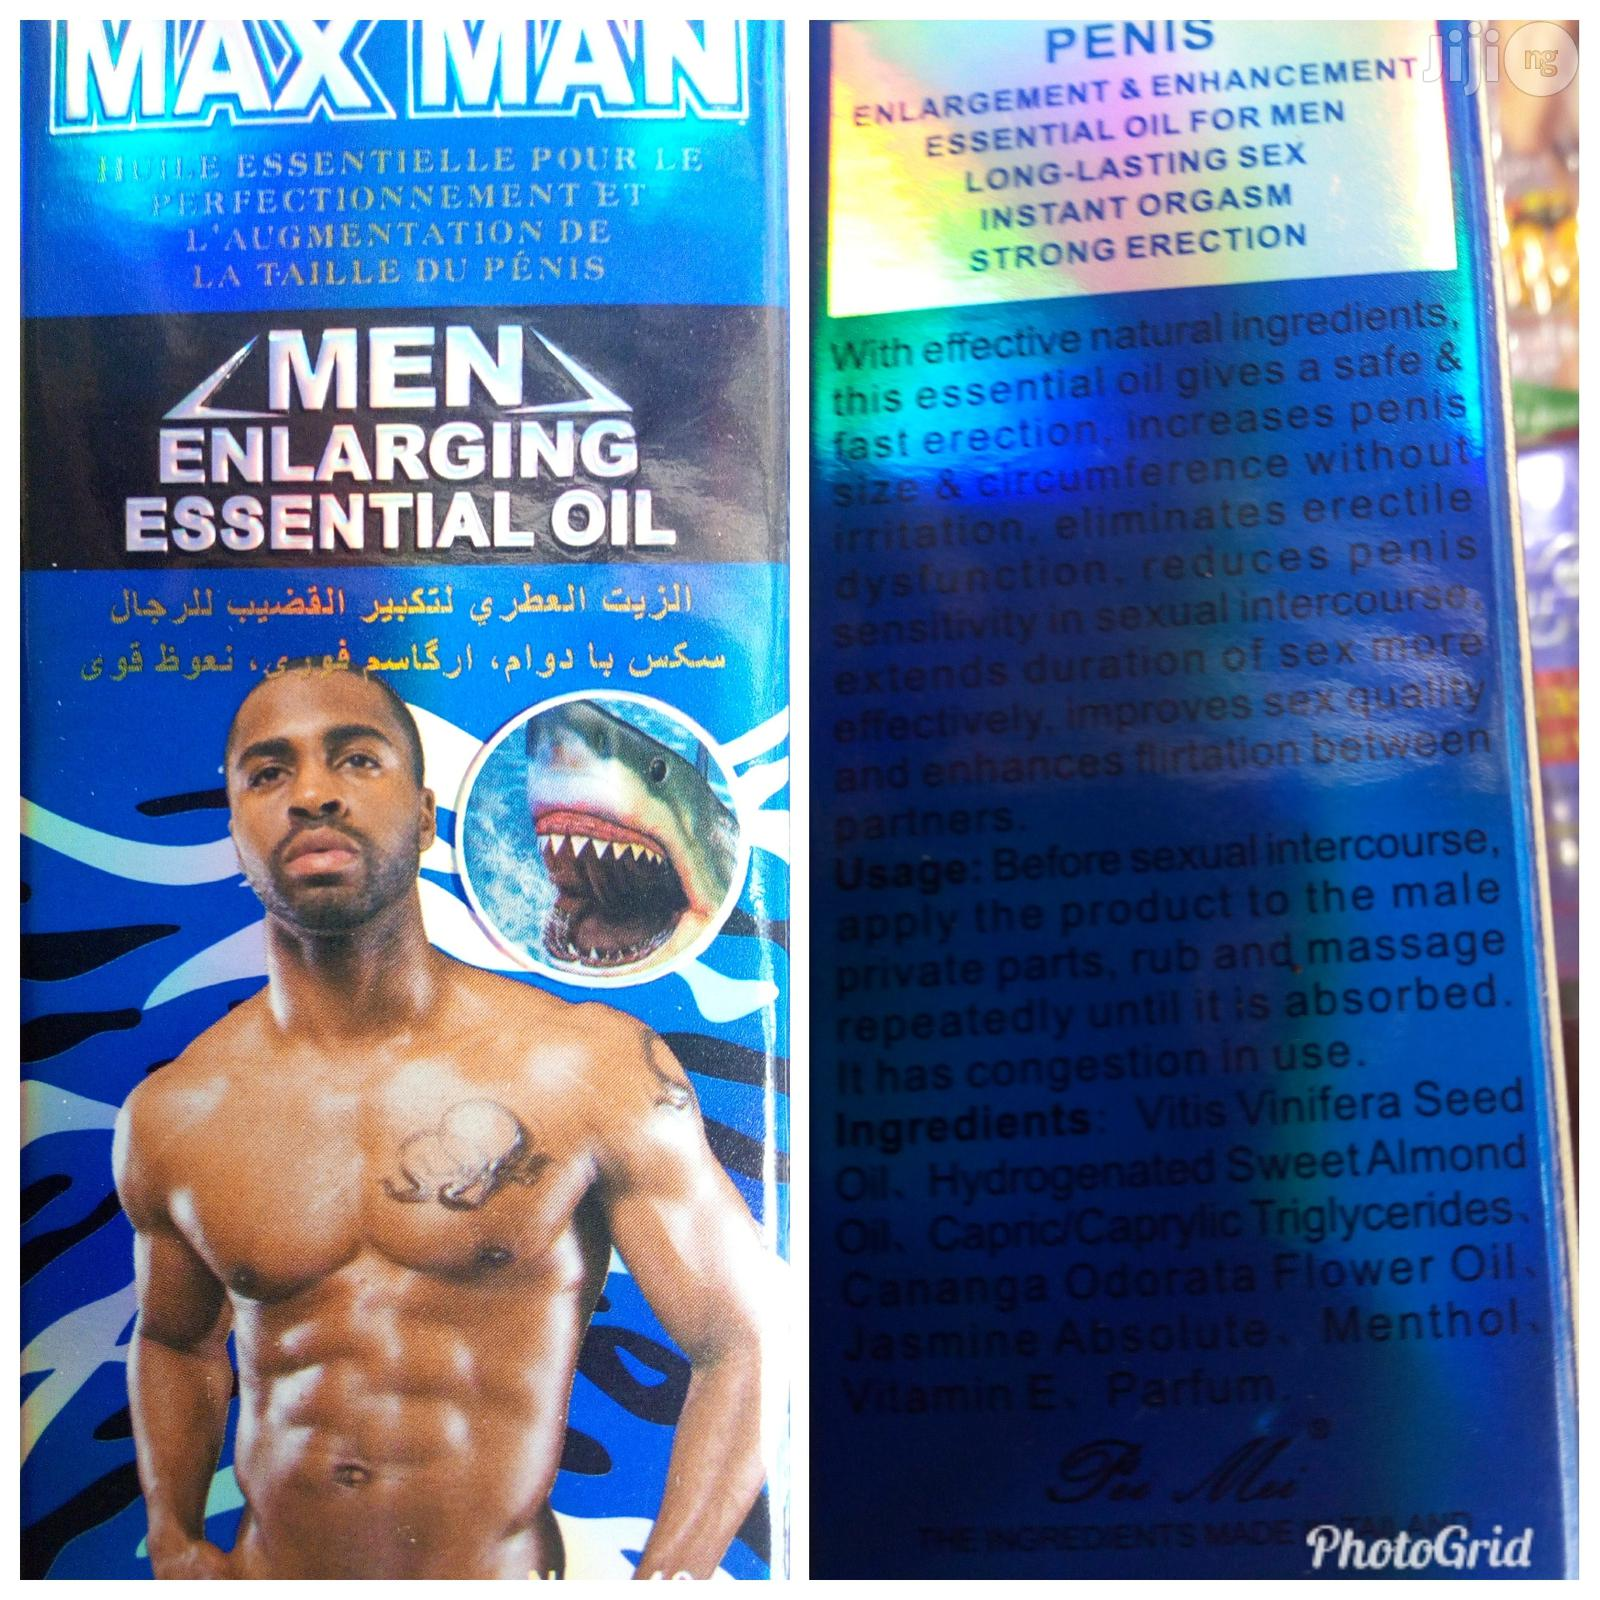 Max Man Penis Enlargement And Long Lasting Oil